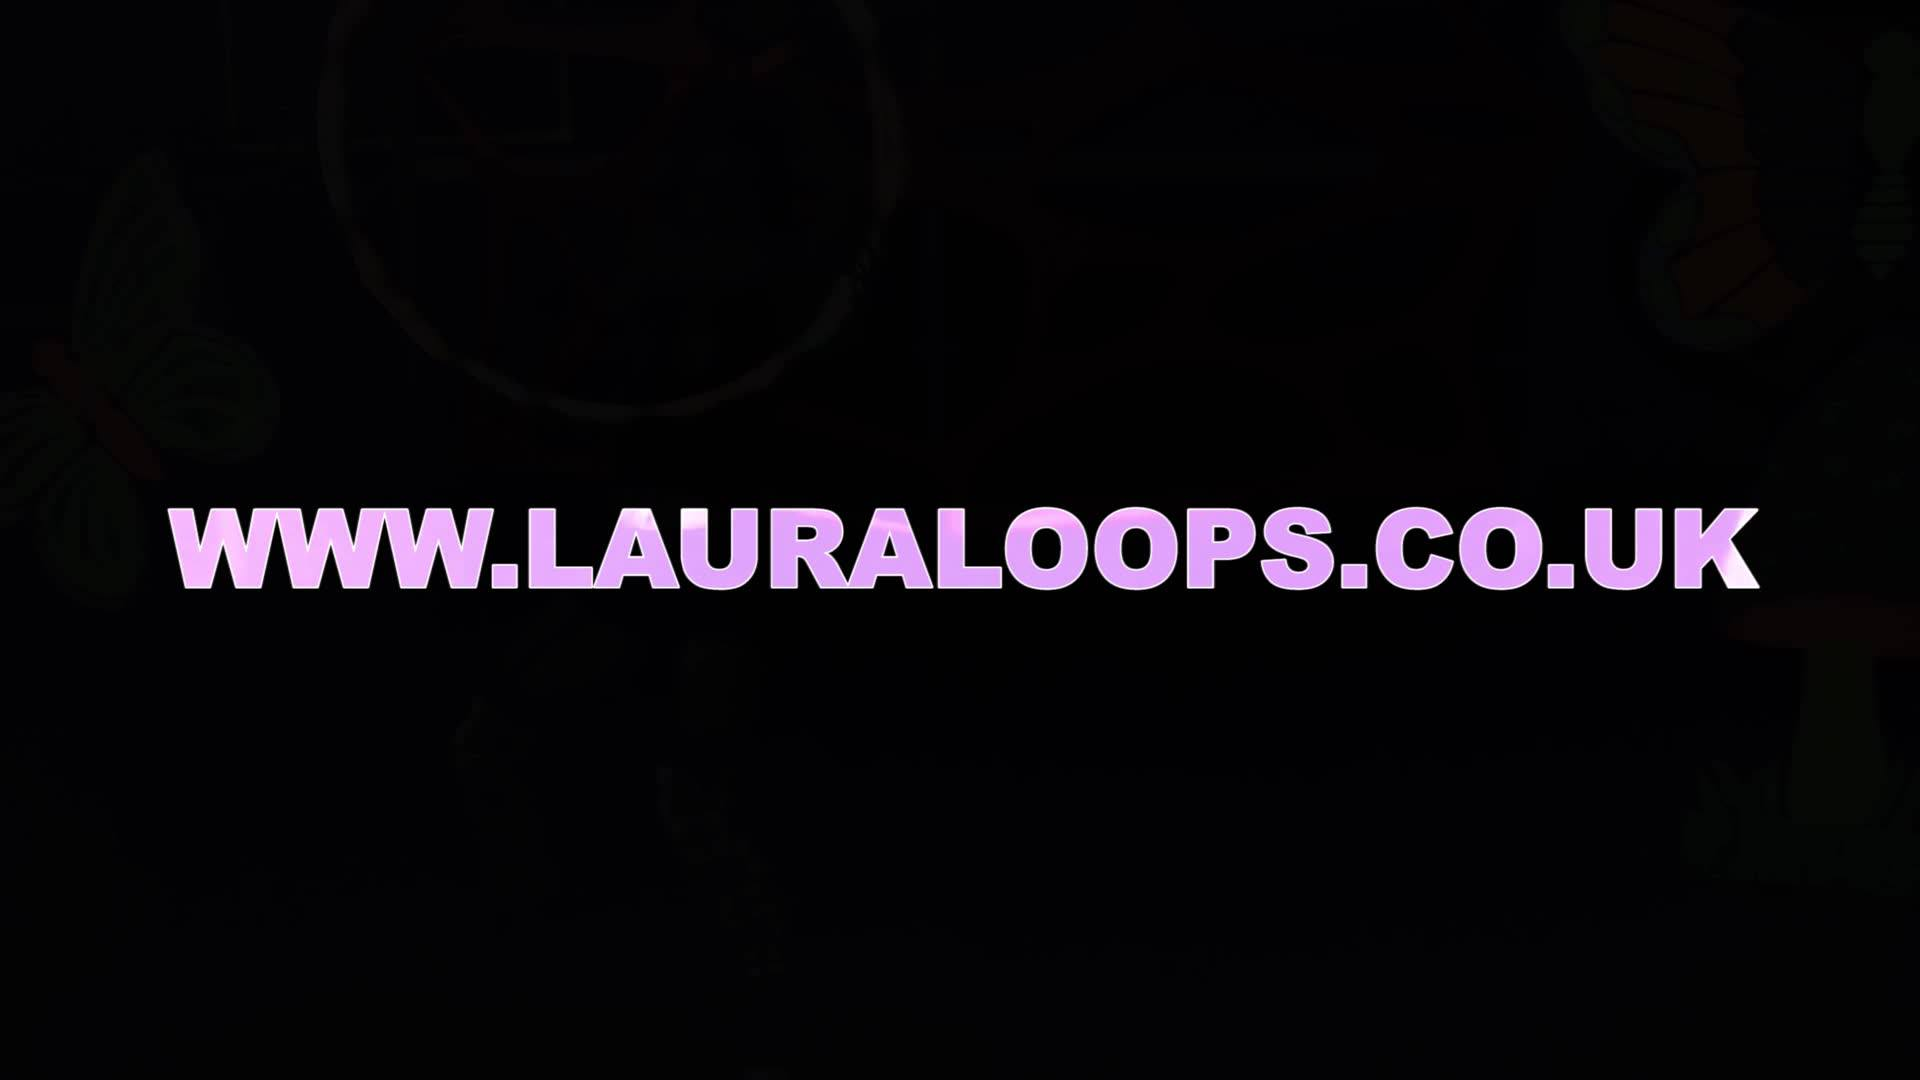 LED Promo-Laura Loops